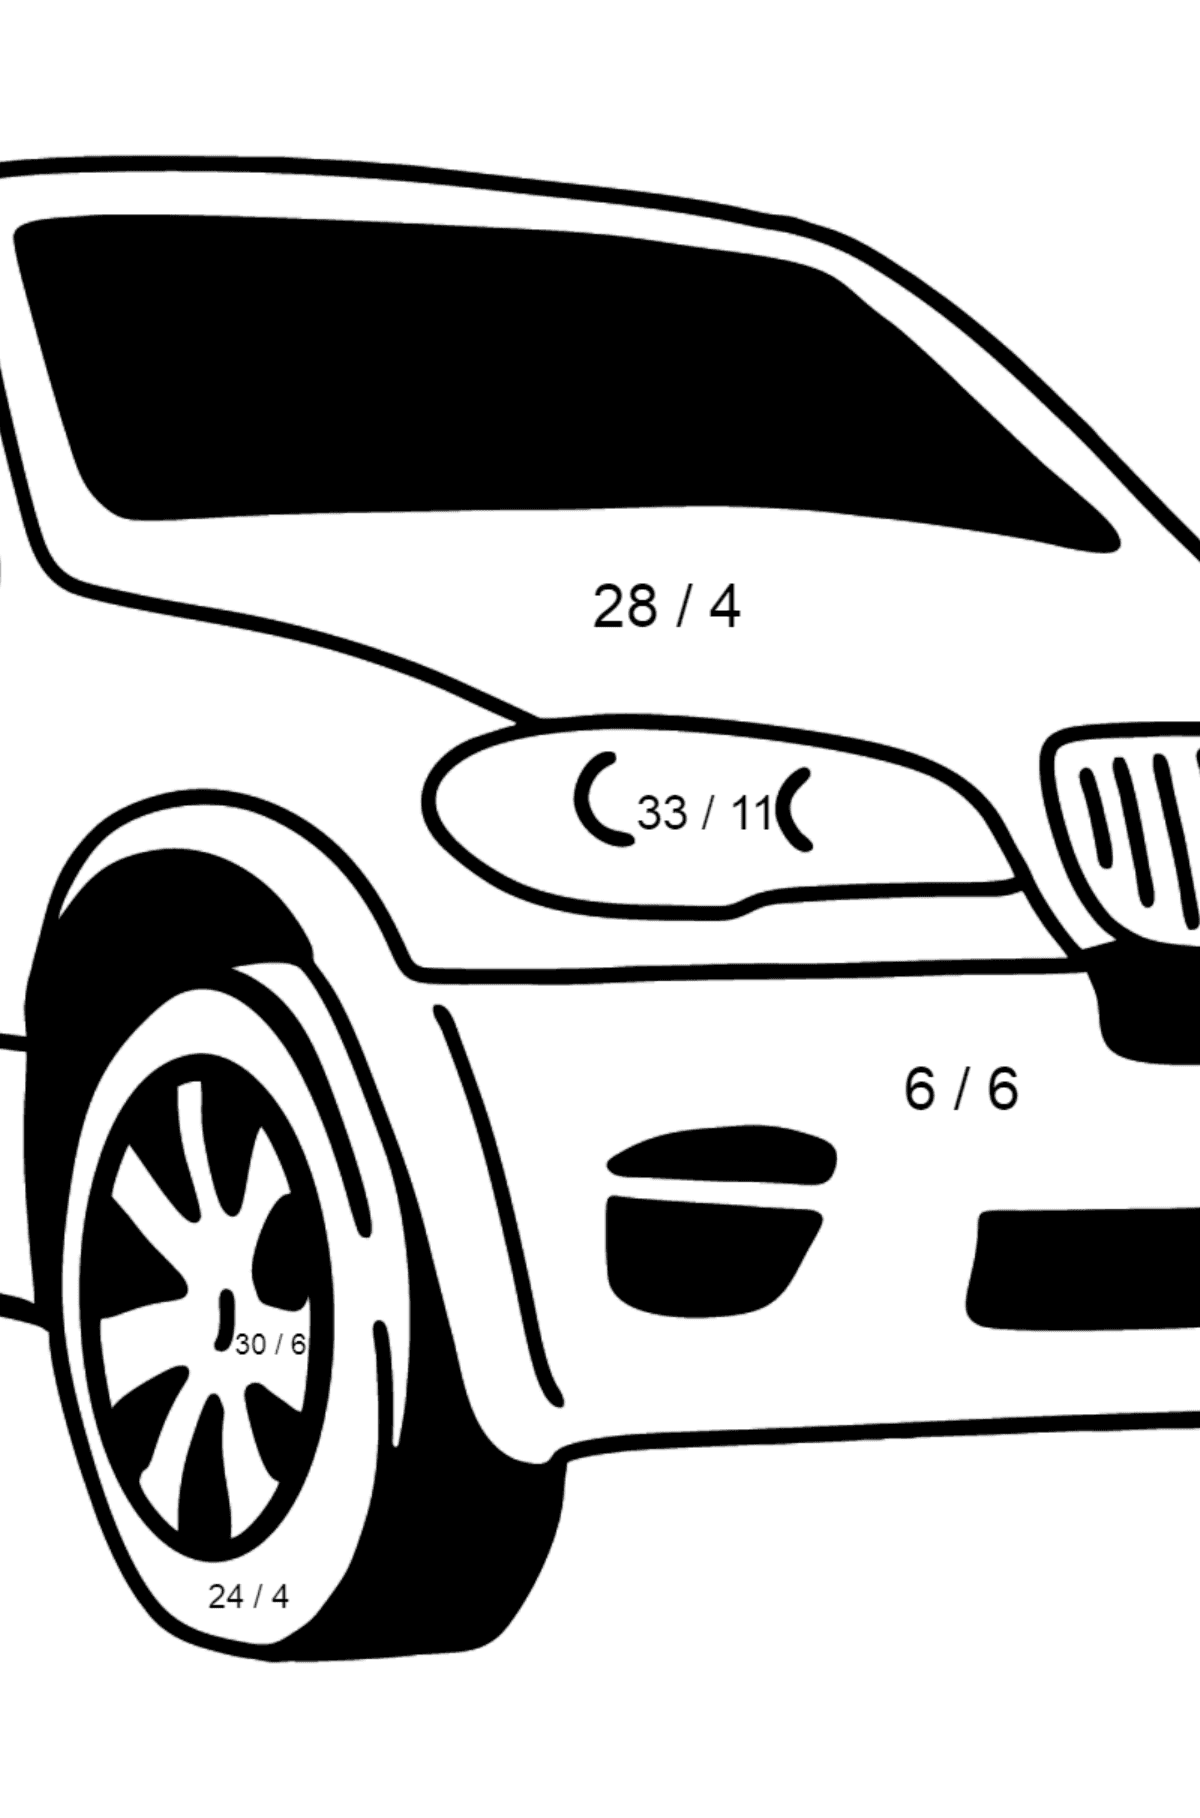 BMW X6 Crossover coloring page - Math Coloring - Division for Kids